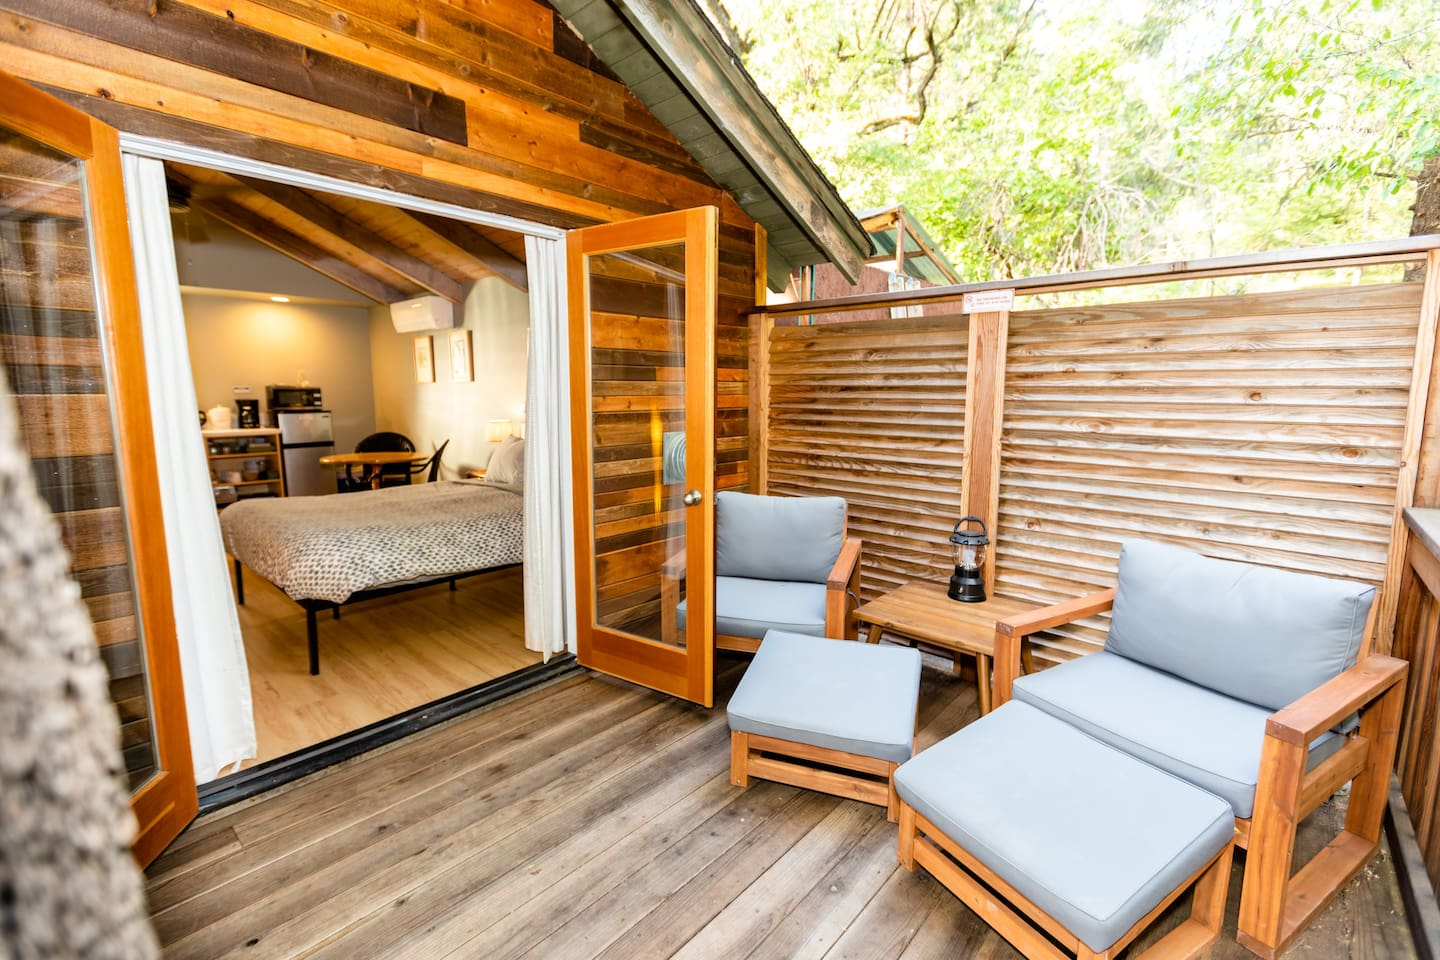 The cottage is a free-standing studio w/kitchenette, bathroom, and french doors leading out to a redwood deck overlooking a wooded ravine.